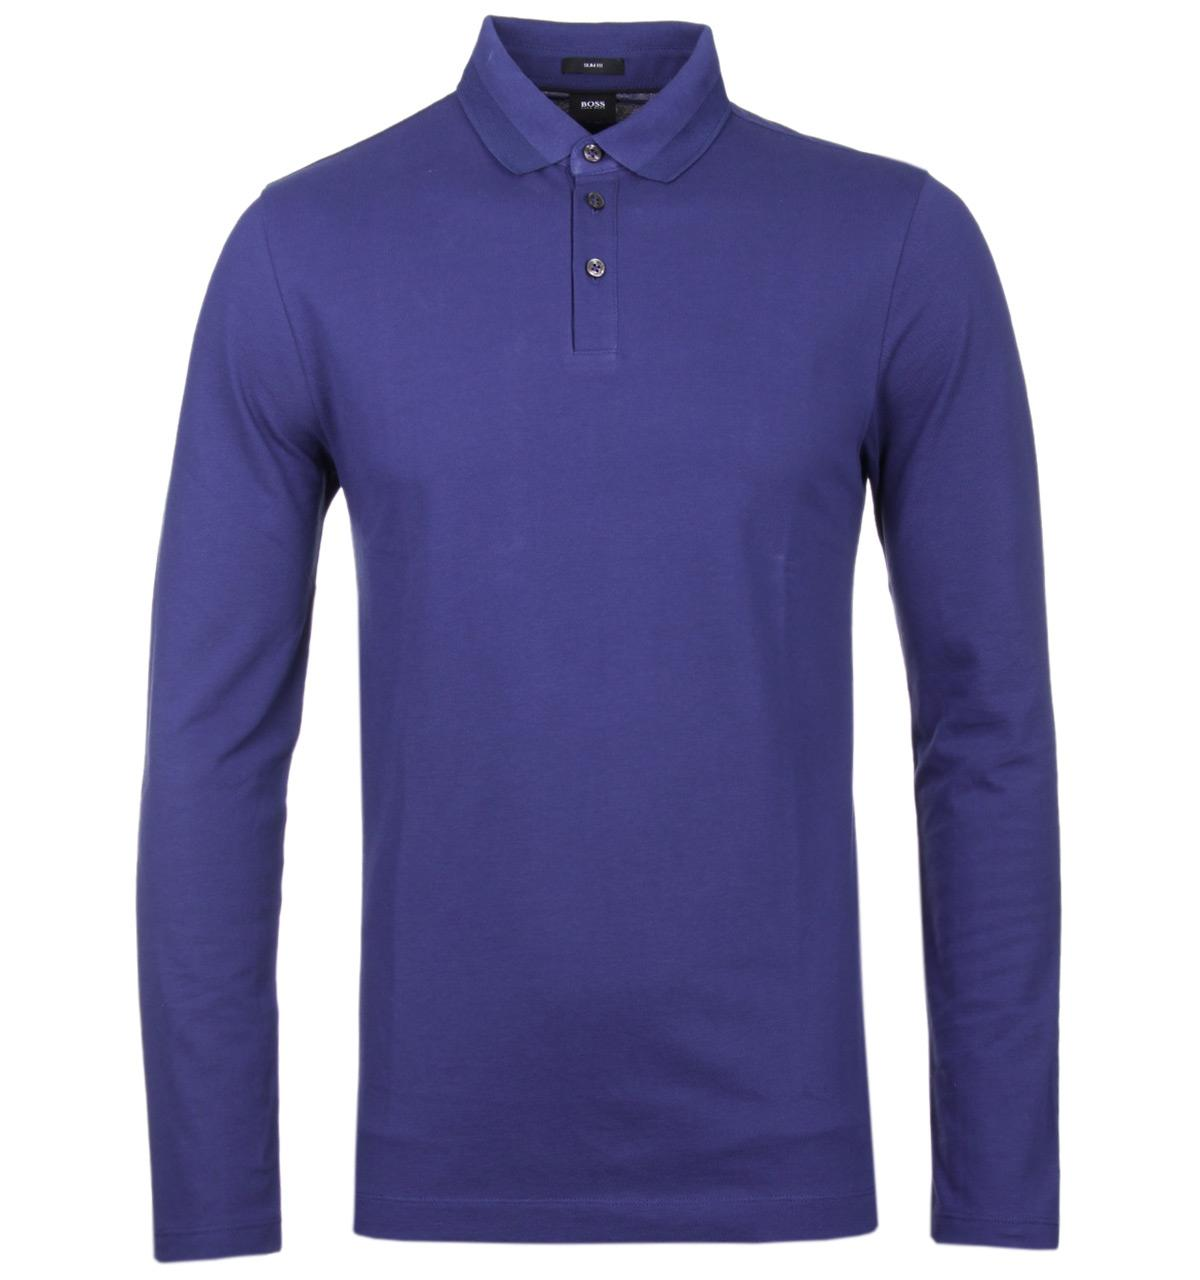 Lyst Boss Pleins 03 Royal Blue Long Sleeve Polo Shirt In